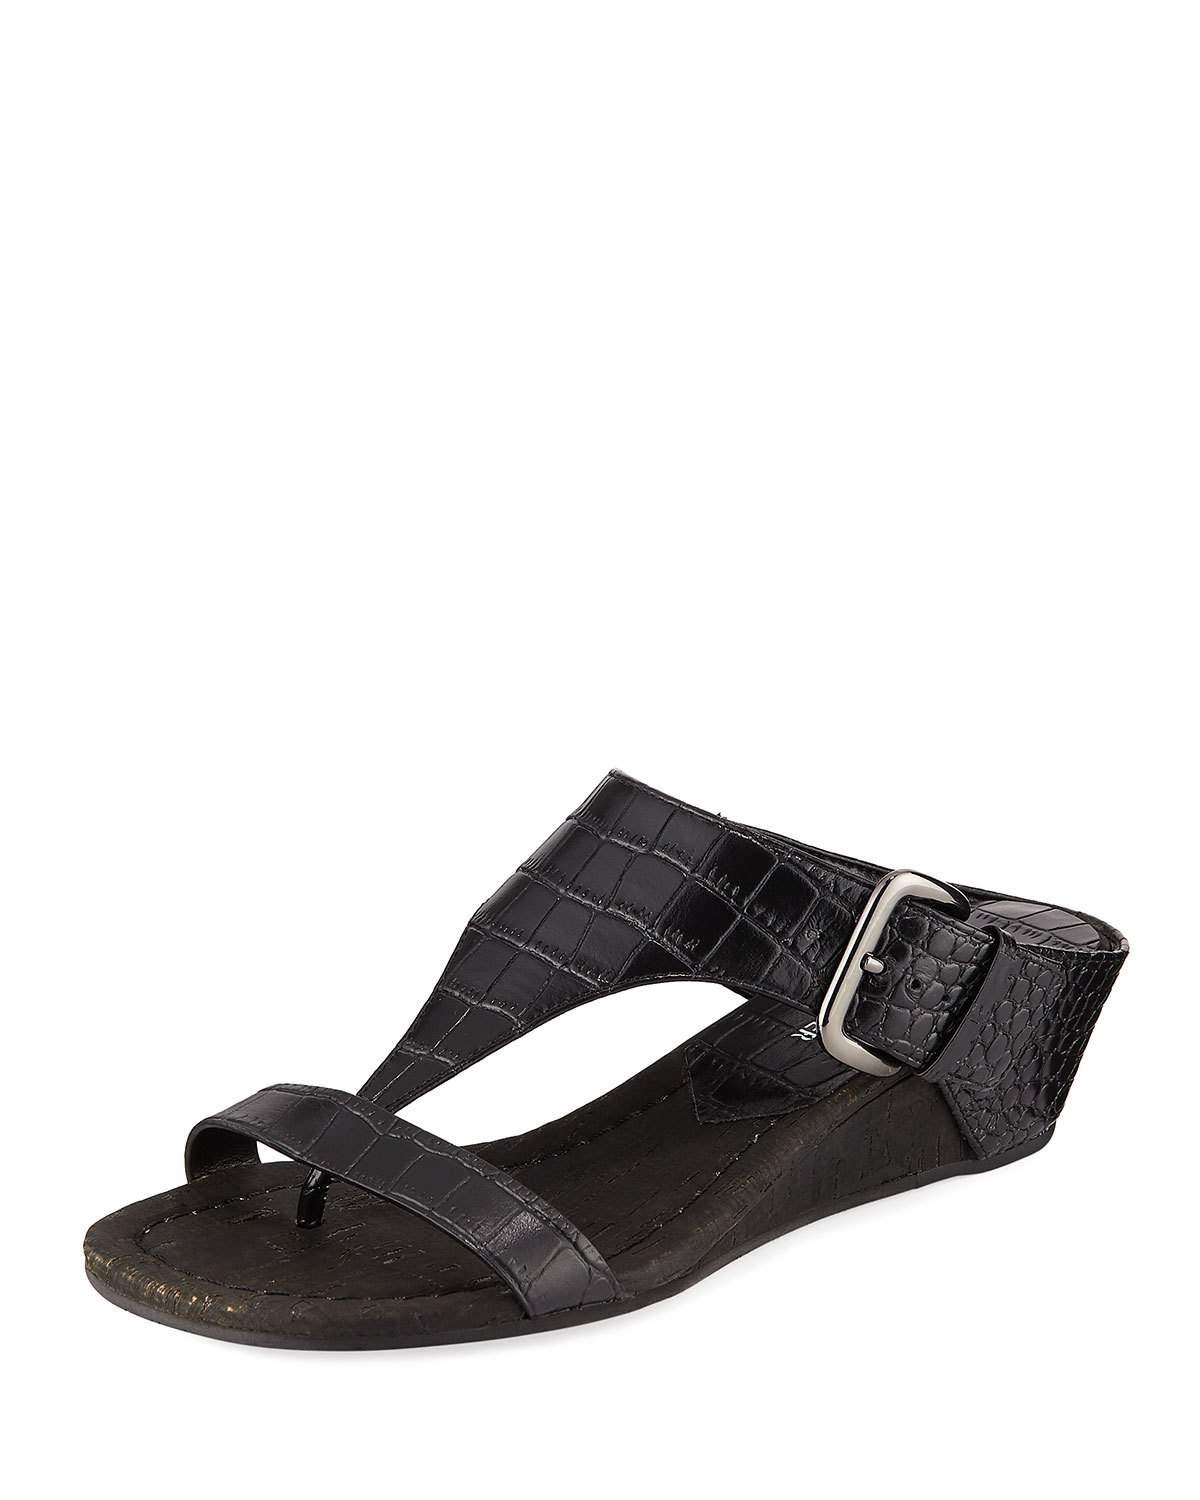 Donald J Pliner Dylan Crocodile-Embossed Wedge Sandal In Black